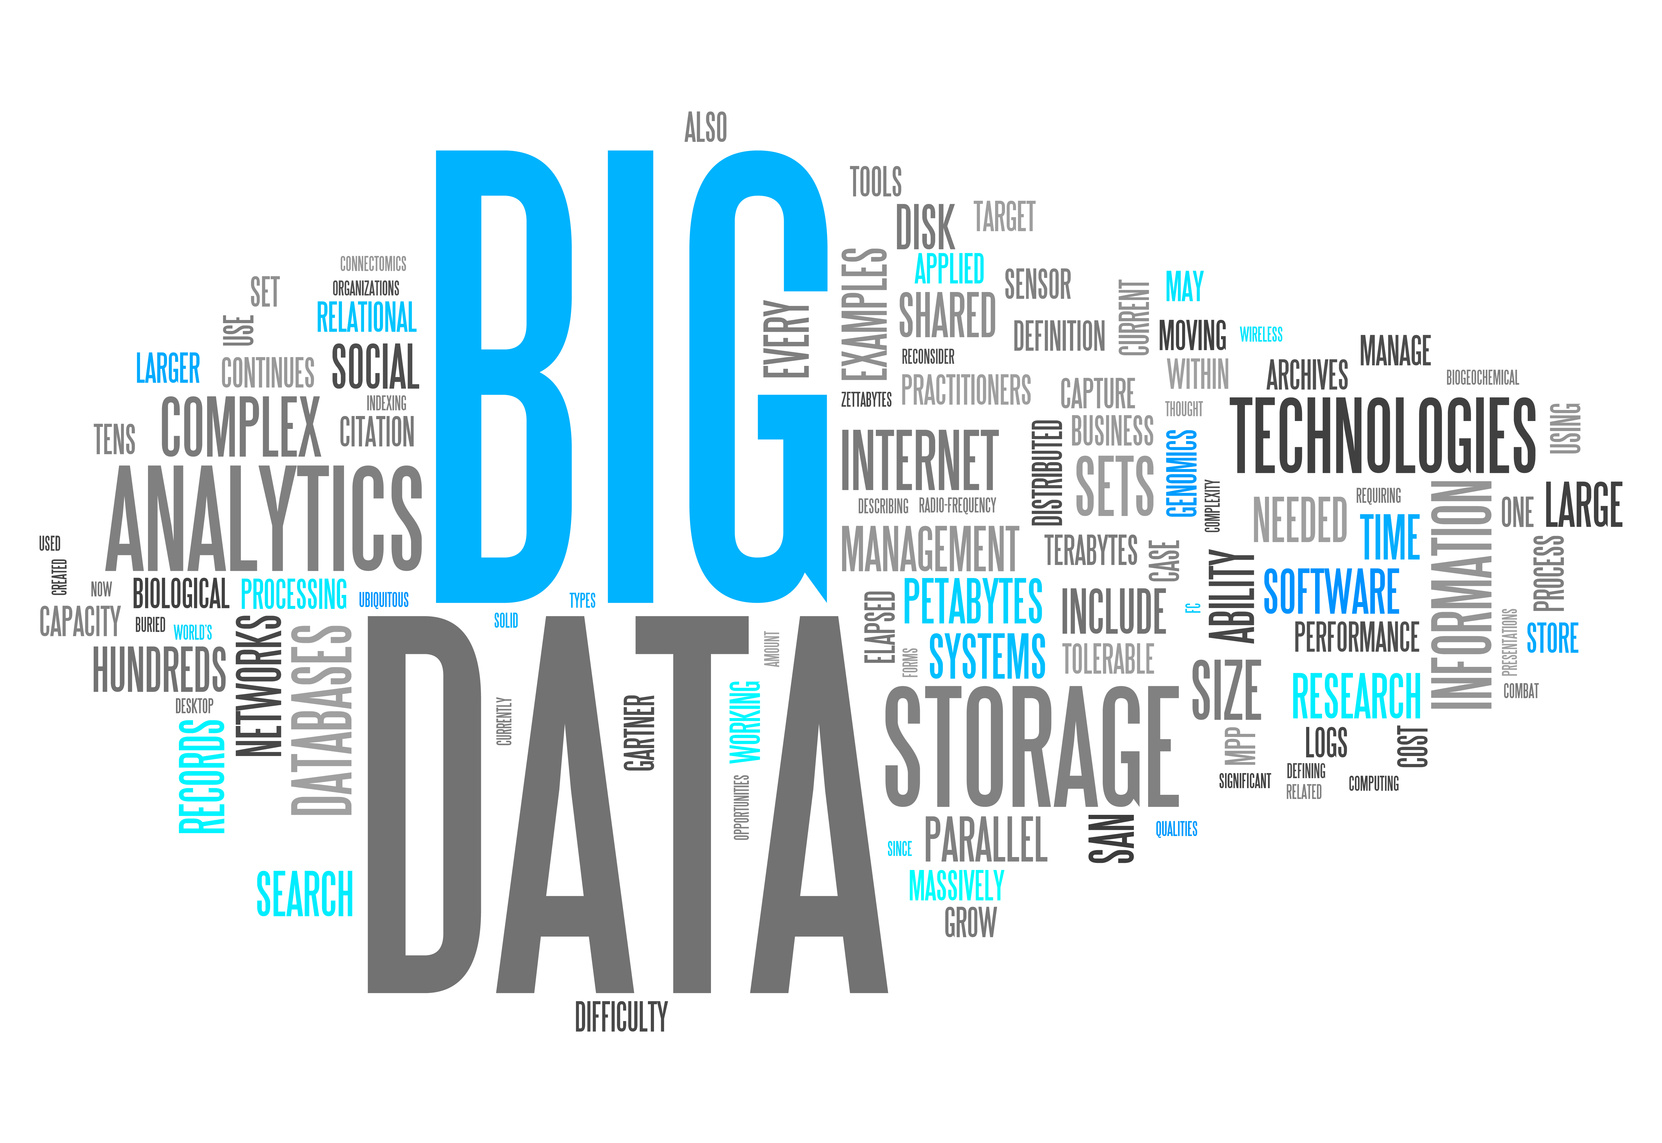 Interview Question of the Week #022 - How to Get Started with Big Data? bigdataimages